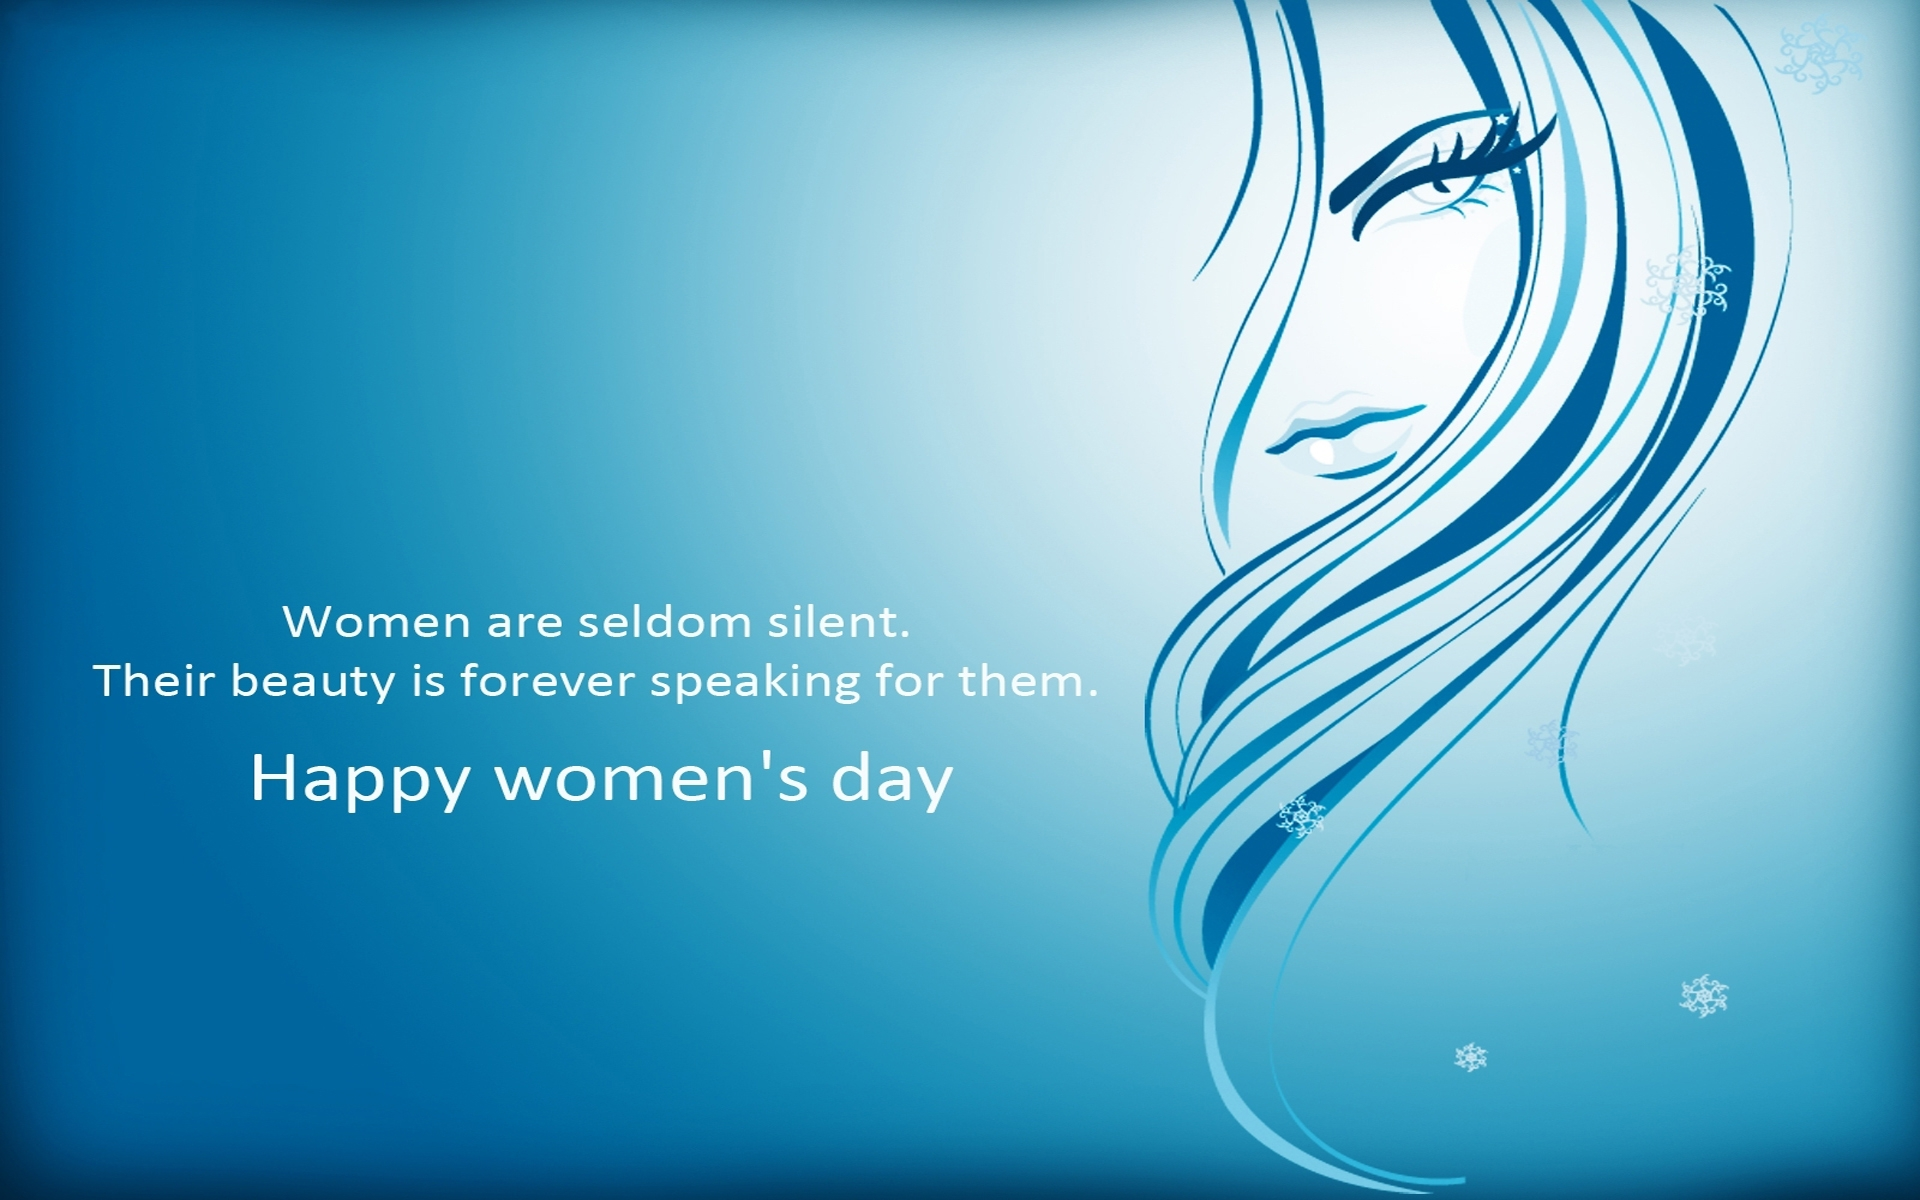 Women's Day 2017 Wallpaper for Desktop